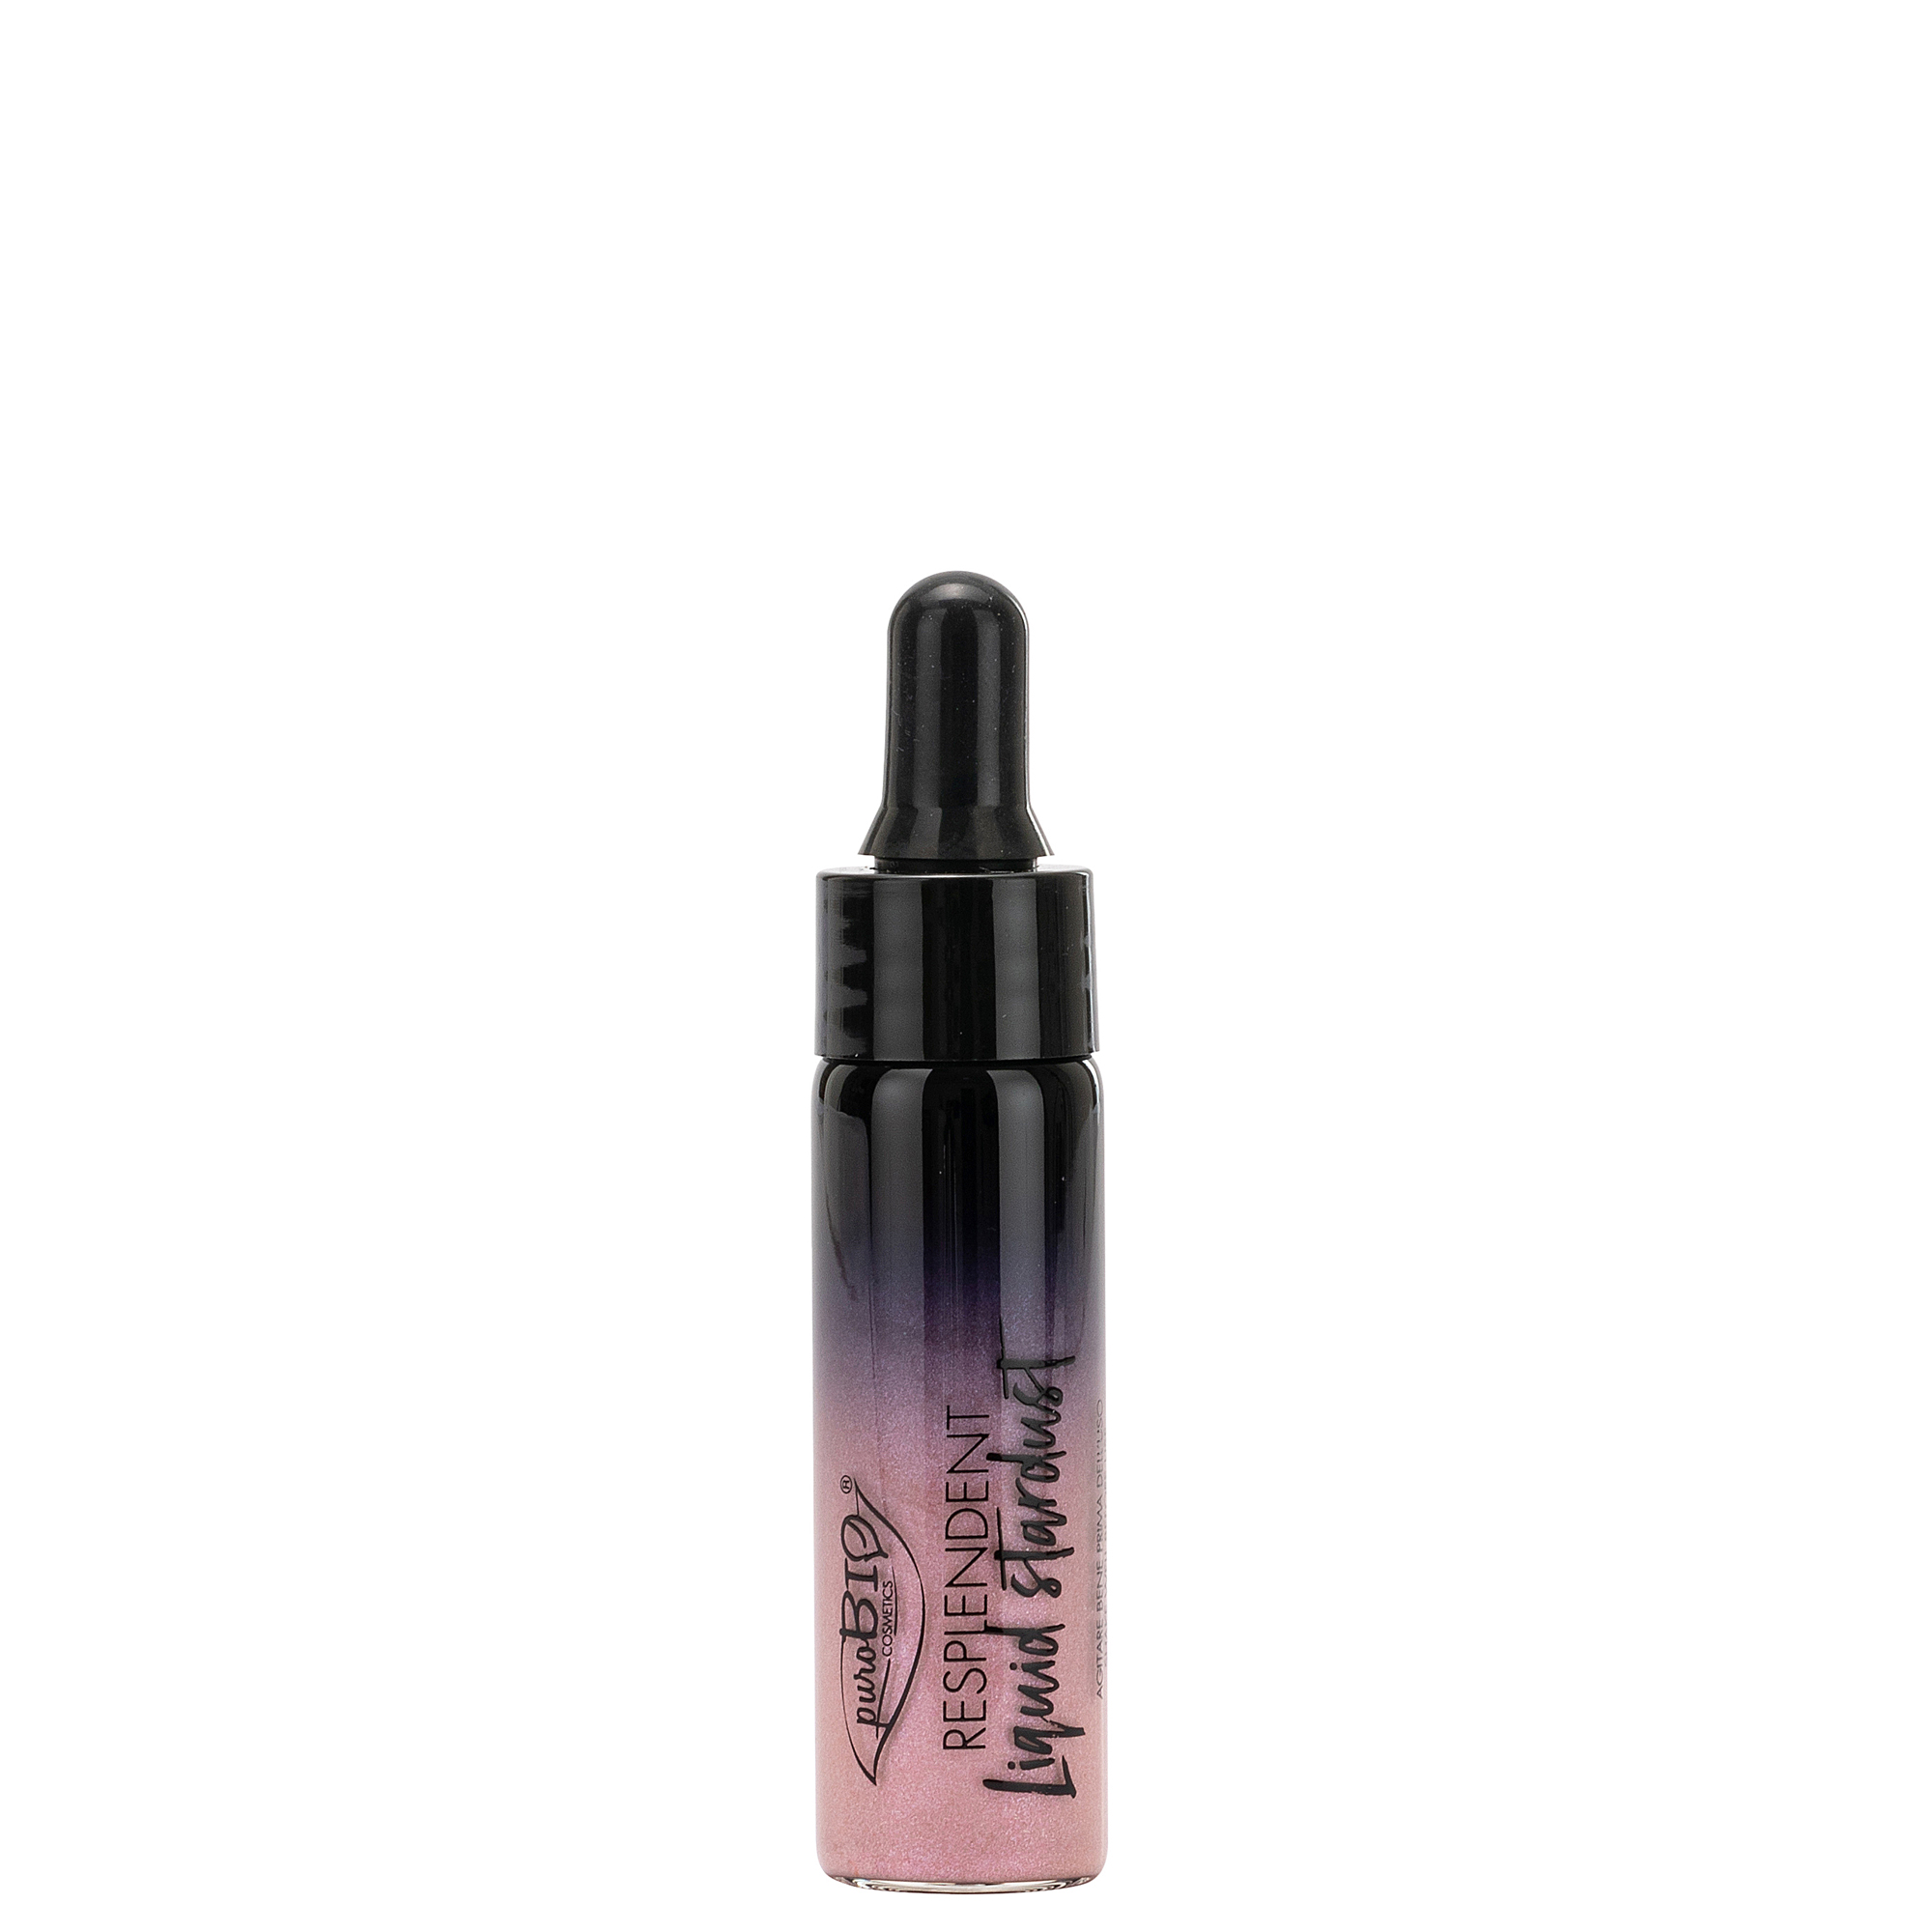 Highlighter i lengshem Resplendent Liquid Stardust COOL PINK 03